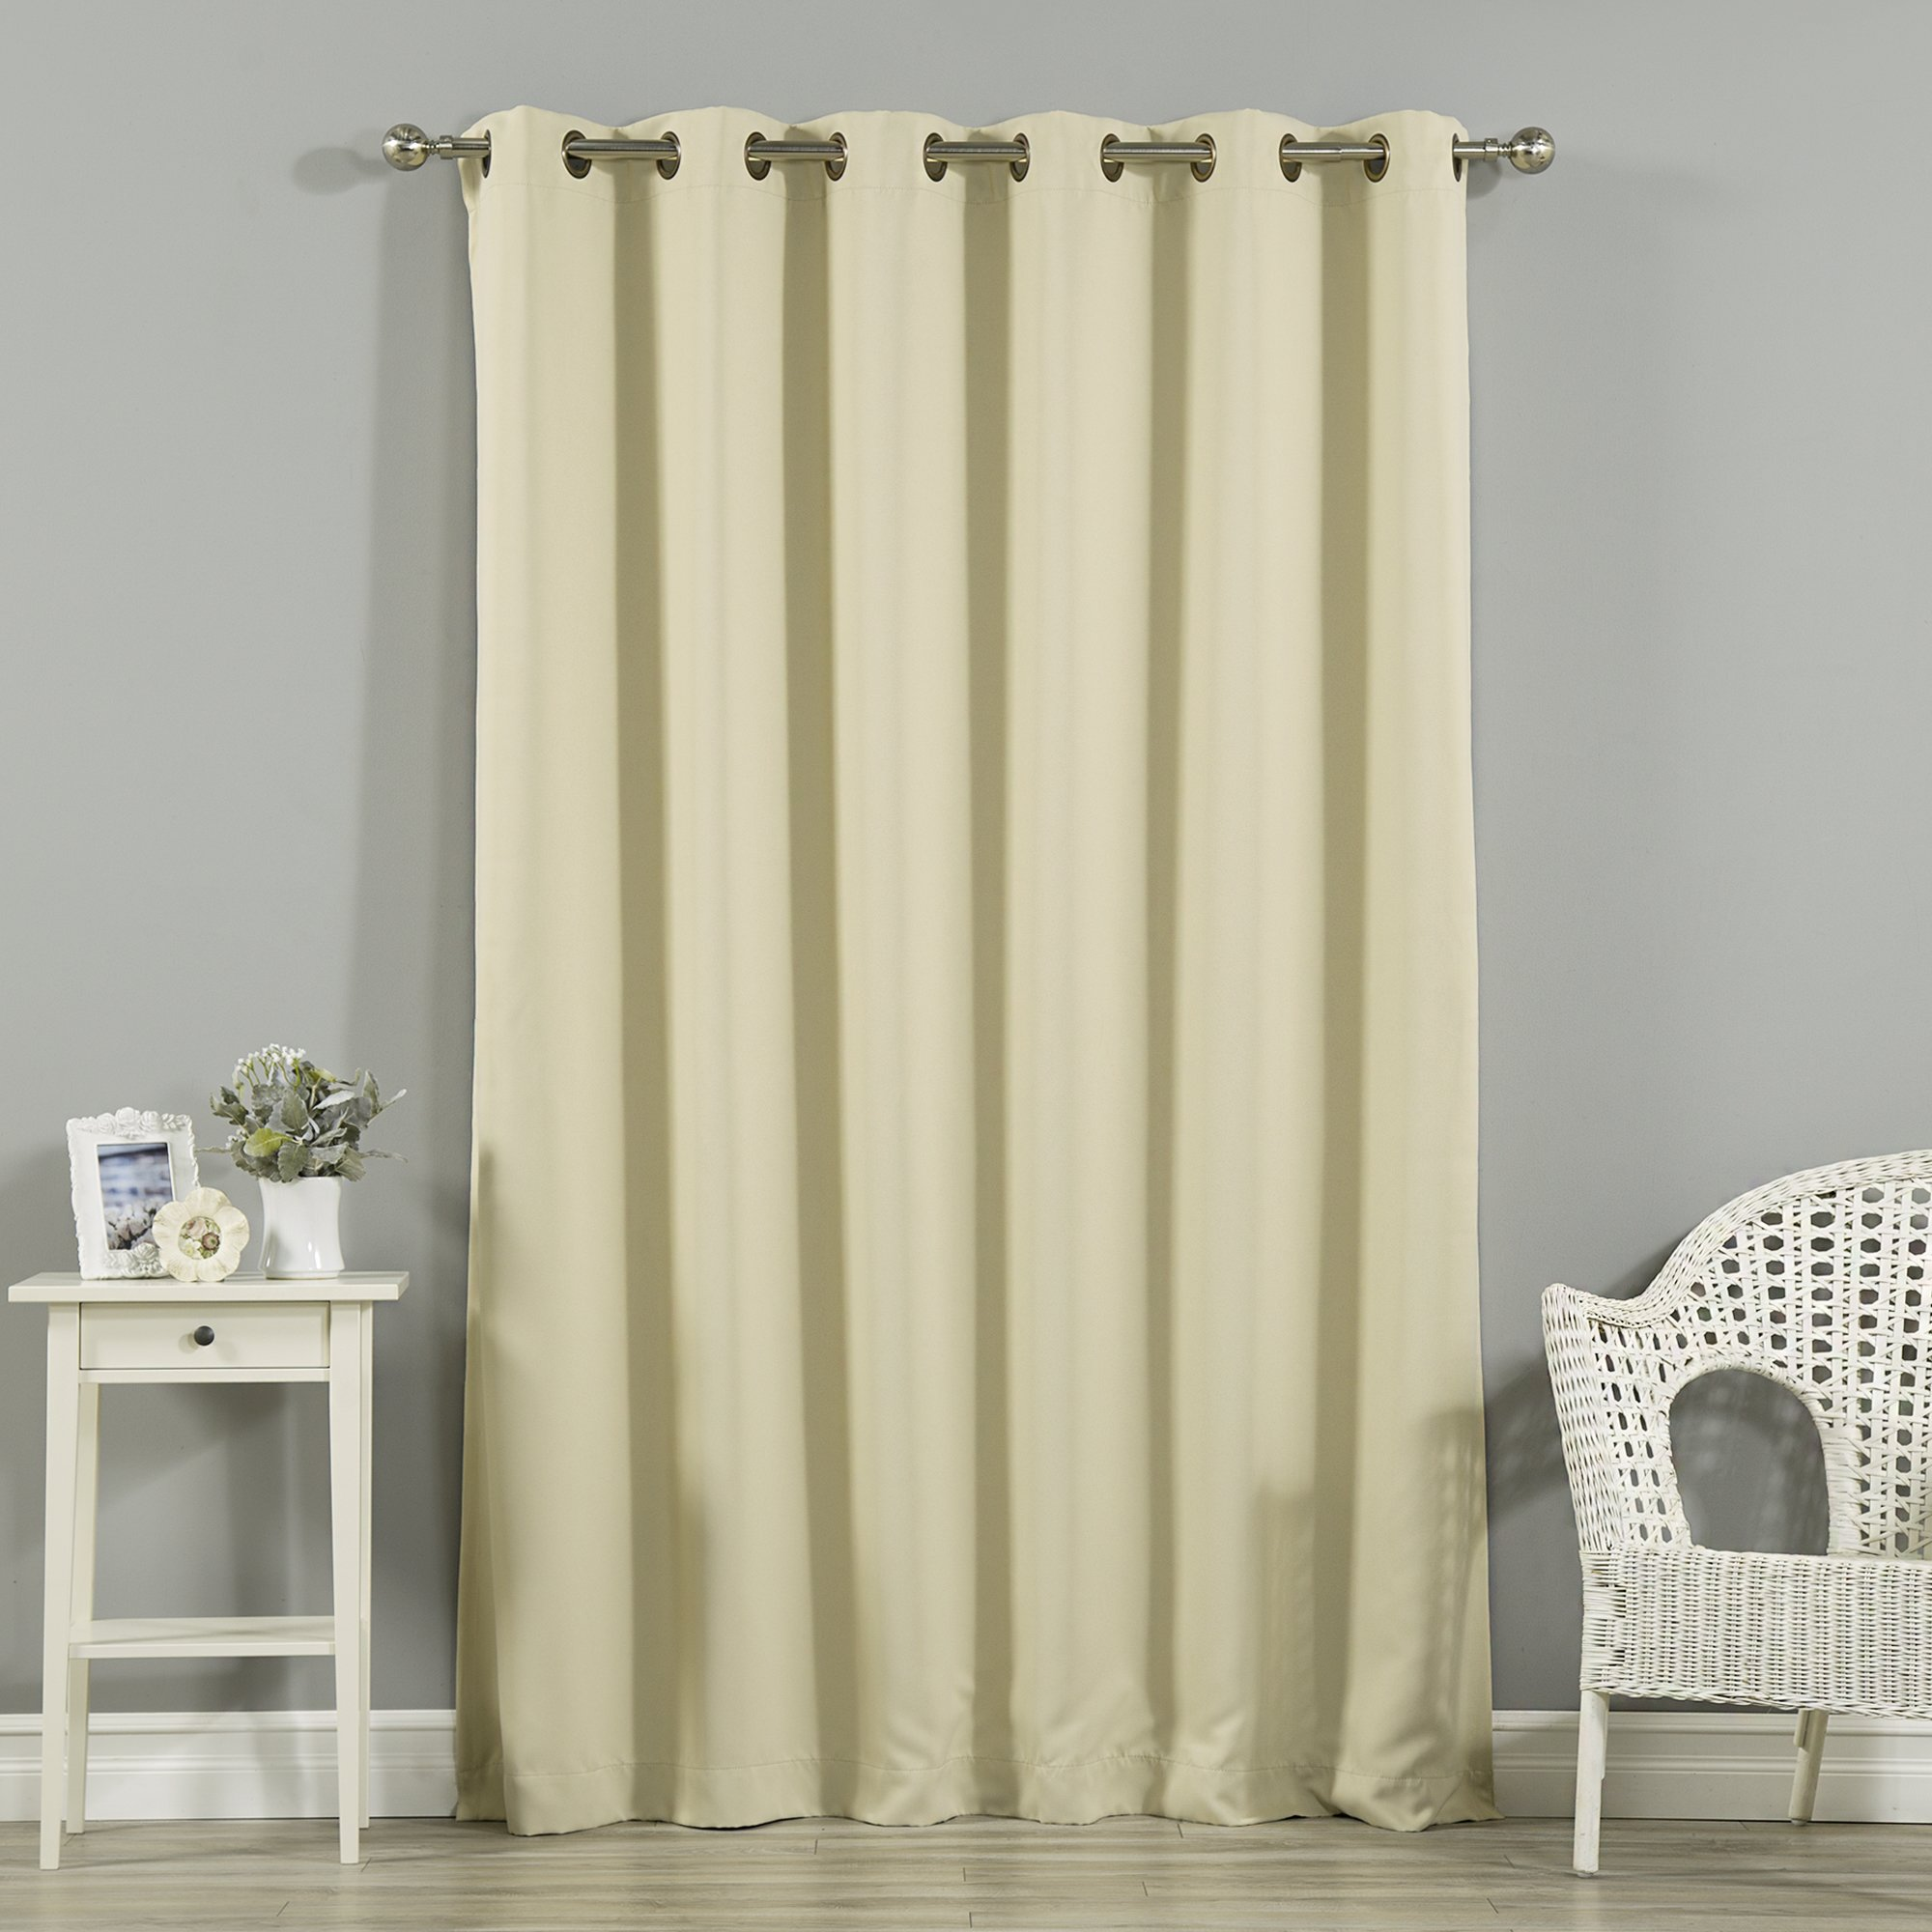 s beautiful pleat on portfolio fringed custom decorative pinch bettie jo valance design rod